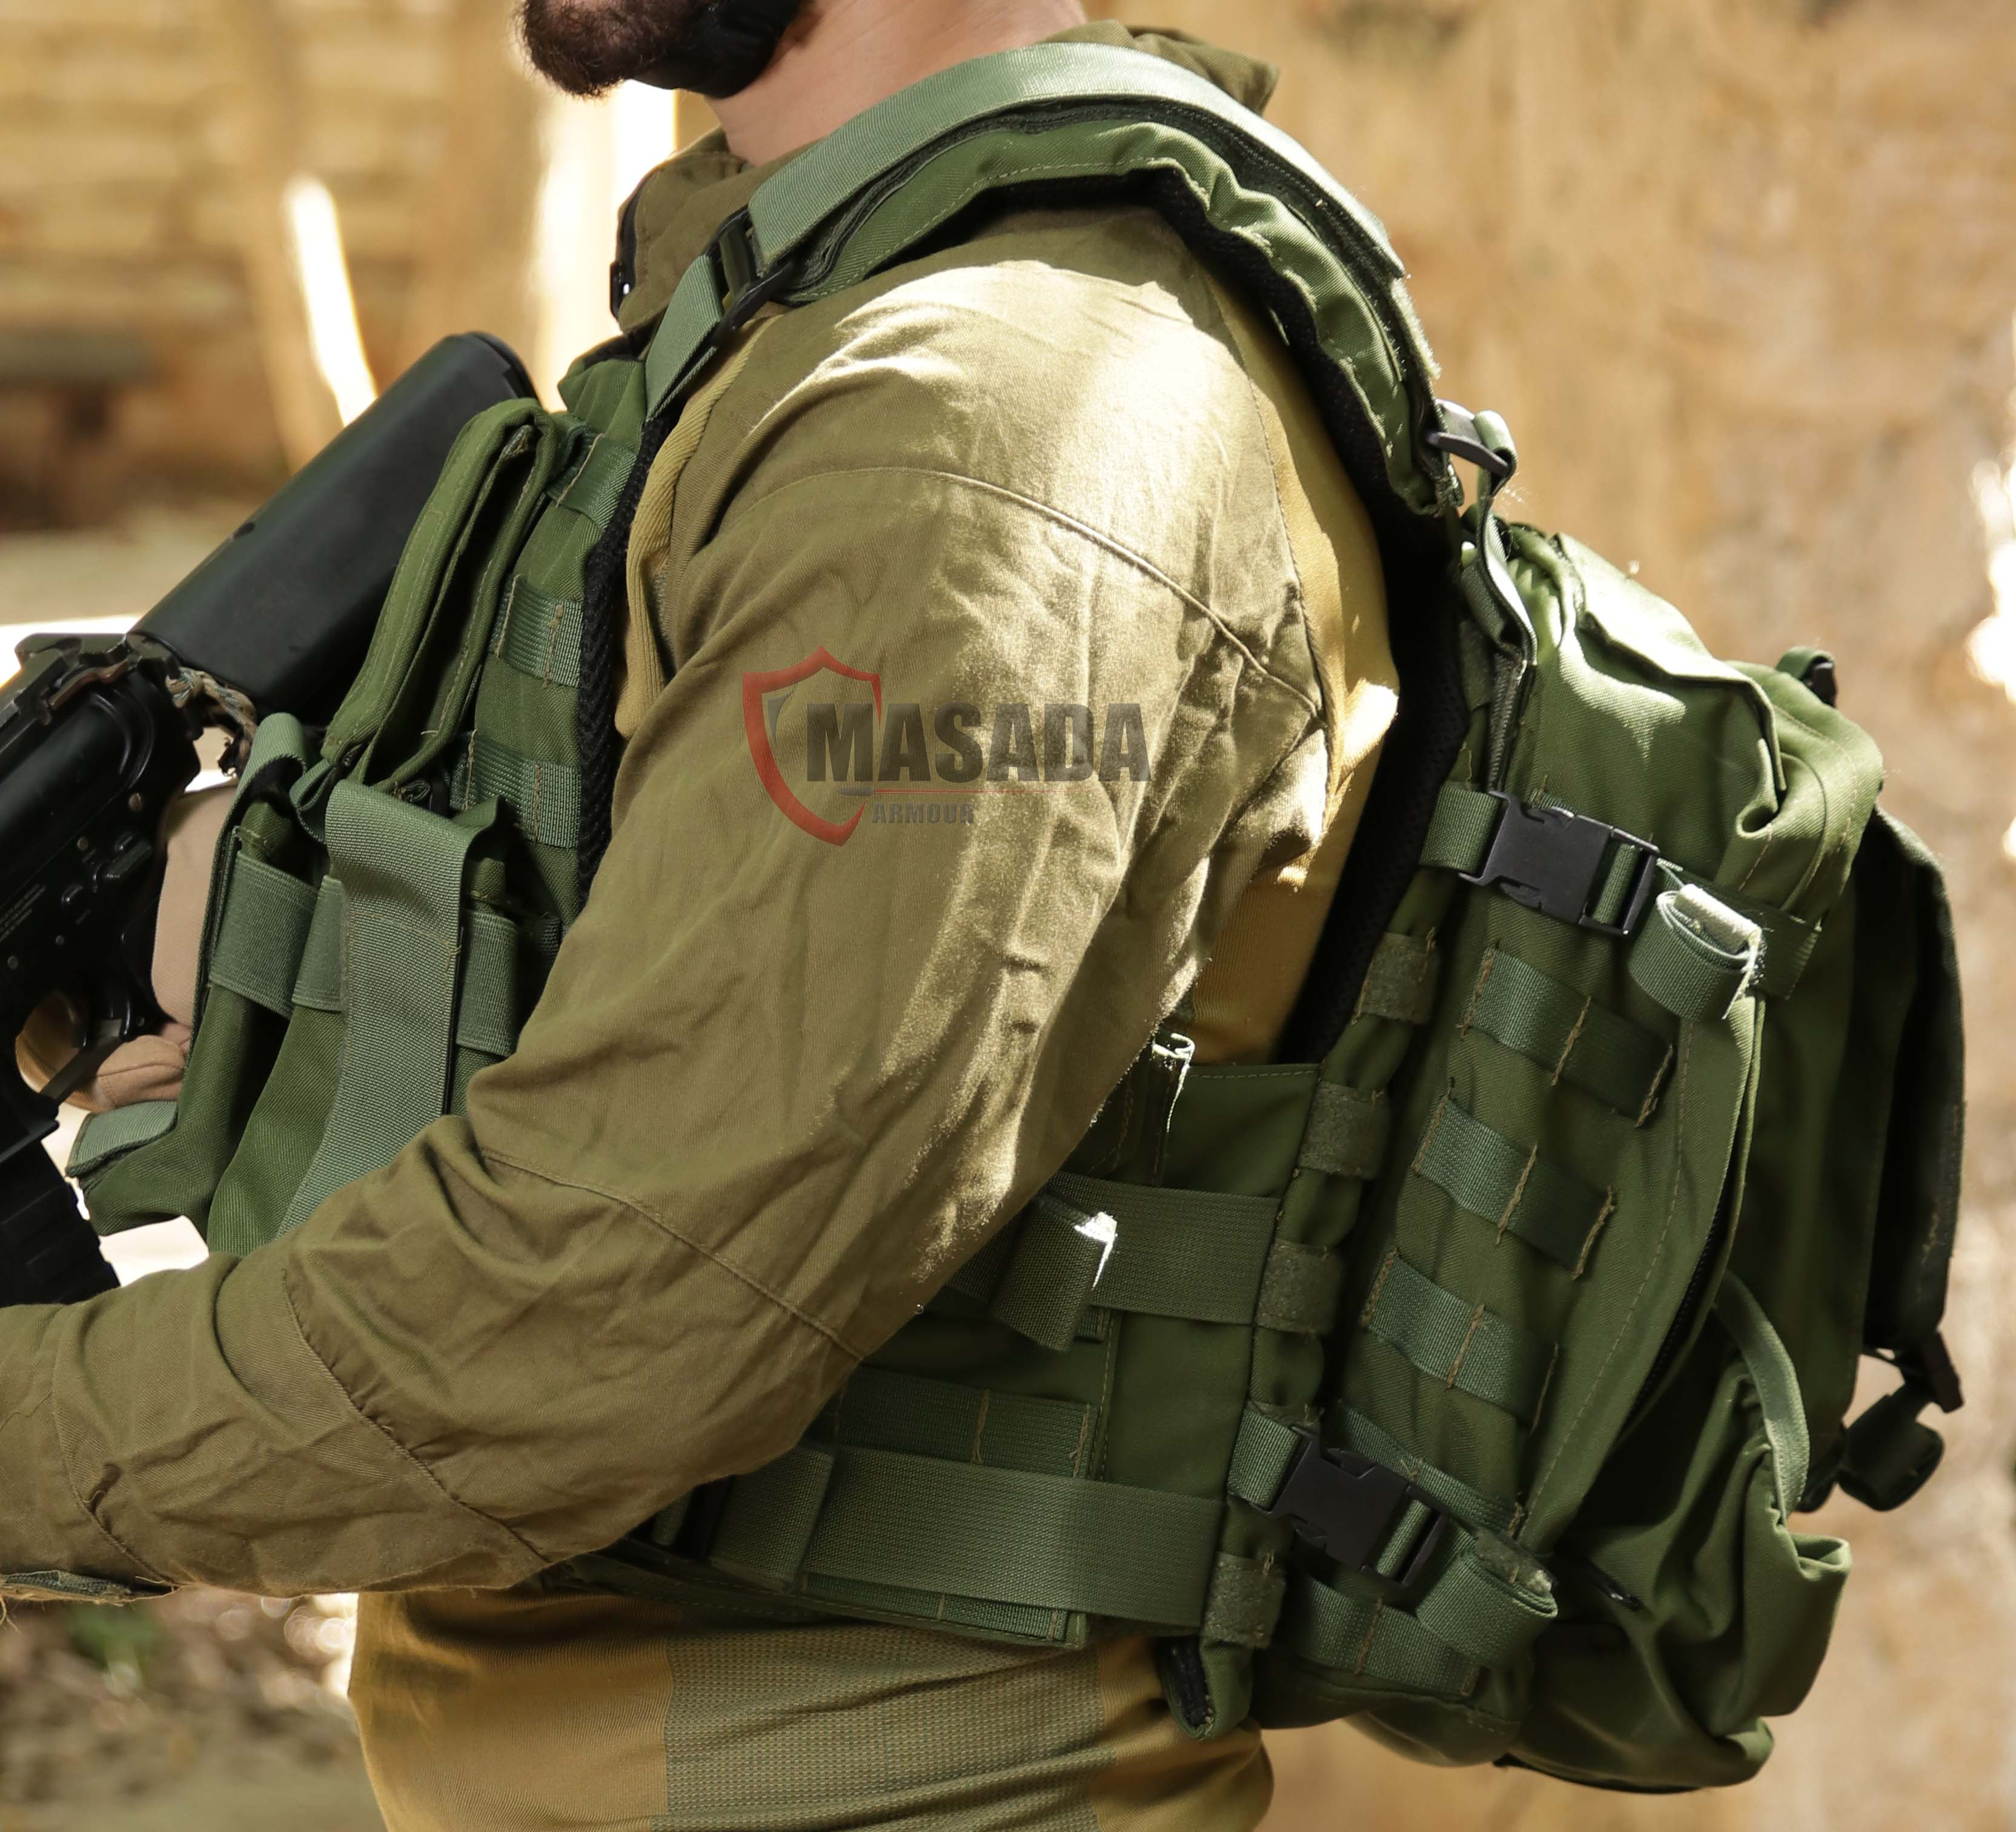 molle plate carrier with a backpack and pouches 274a5fedfb7b4